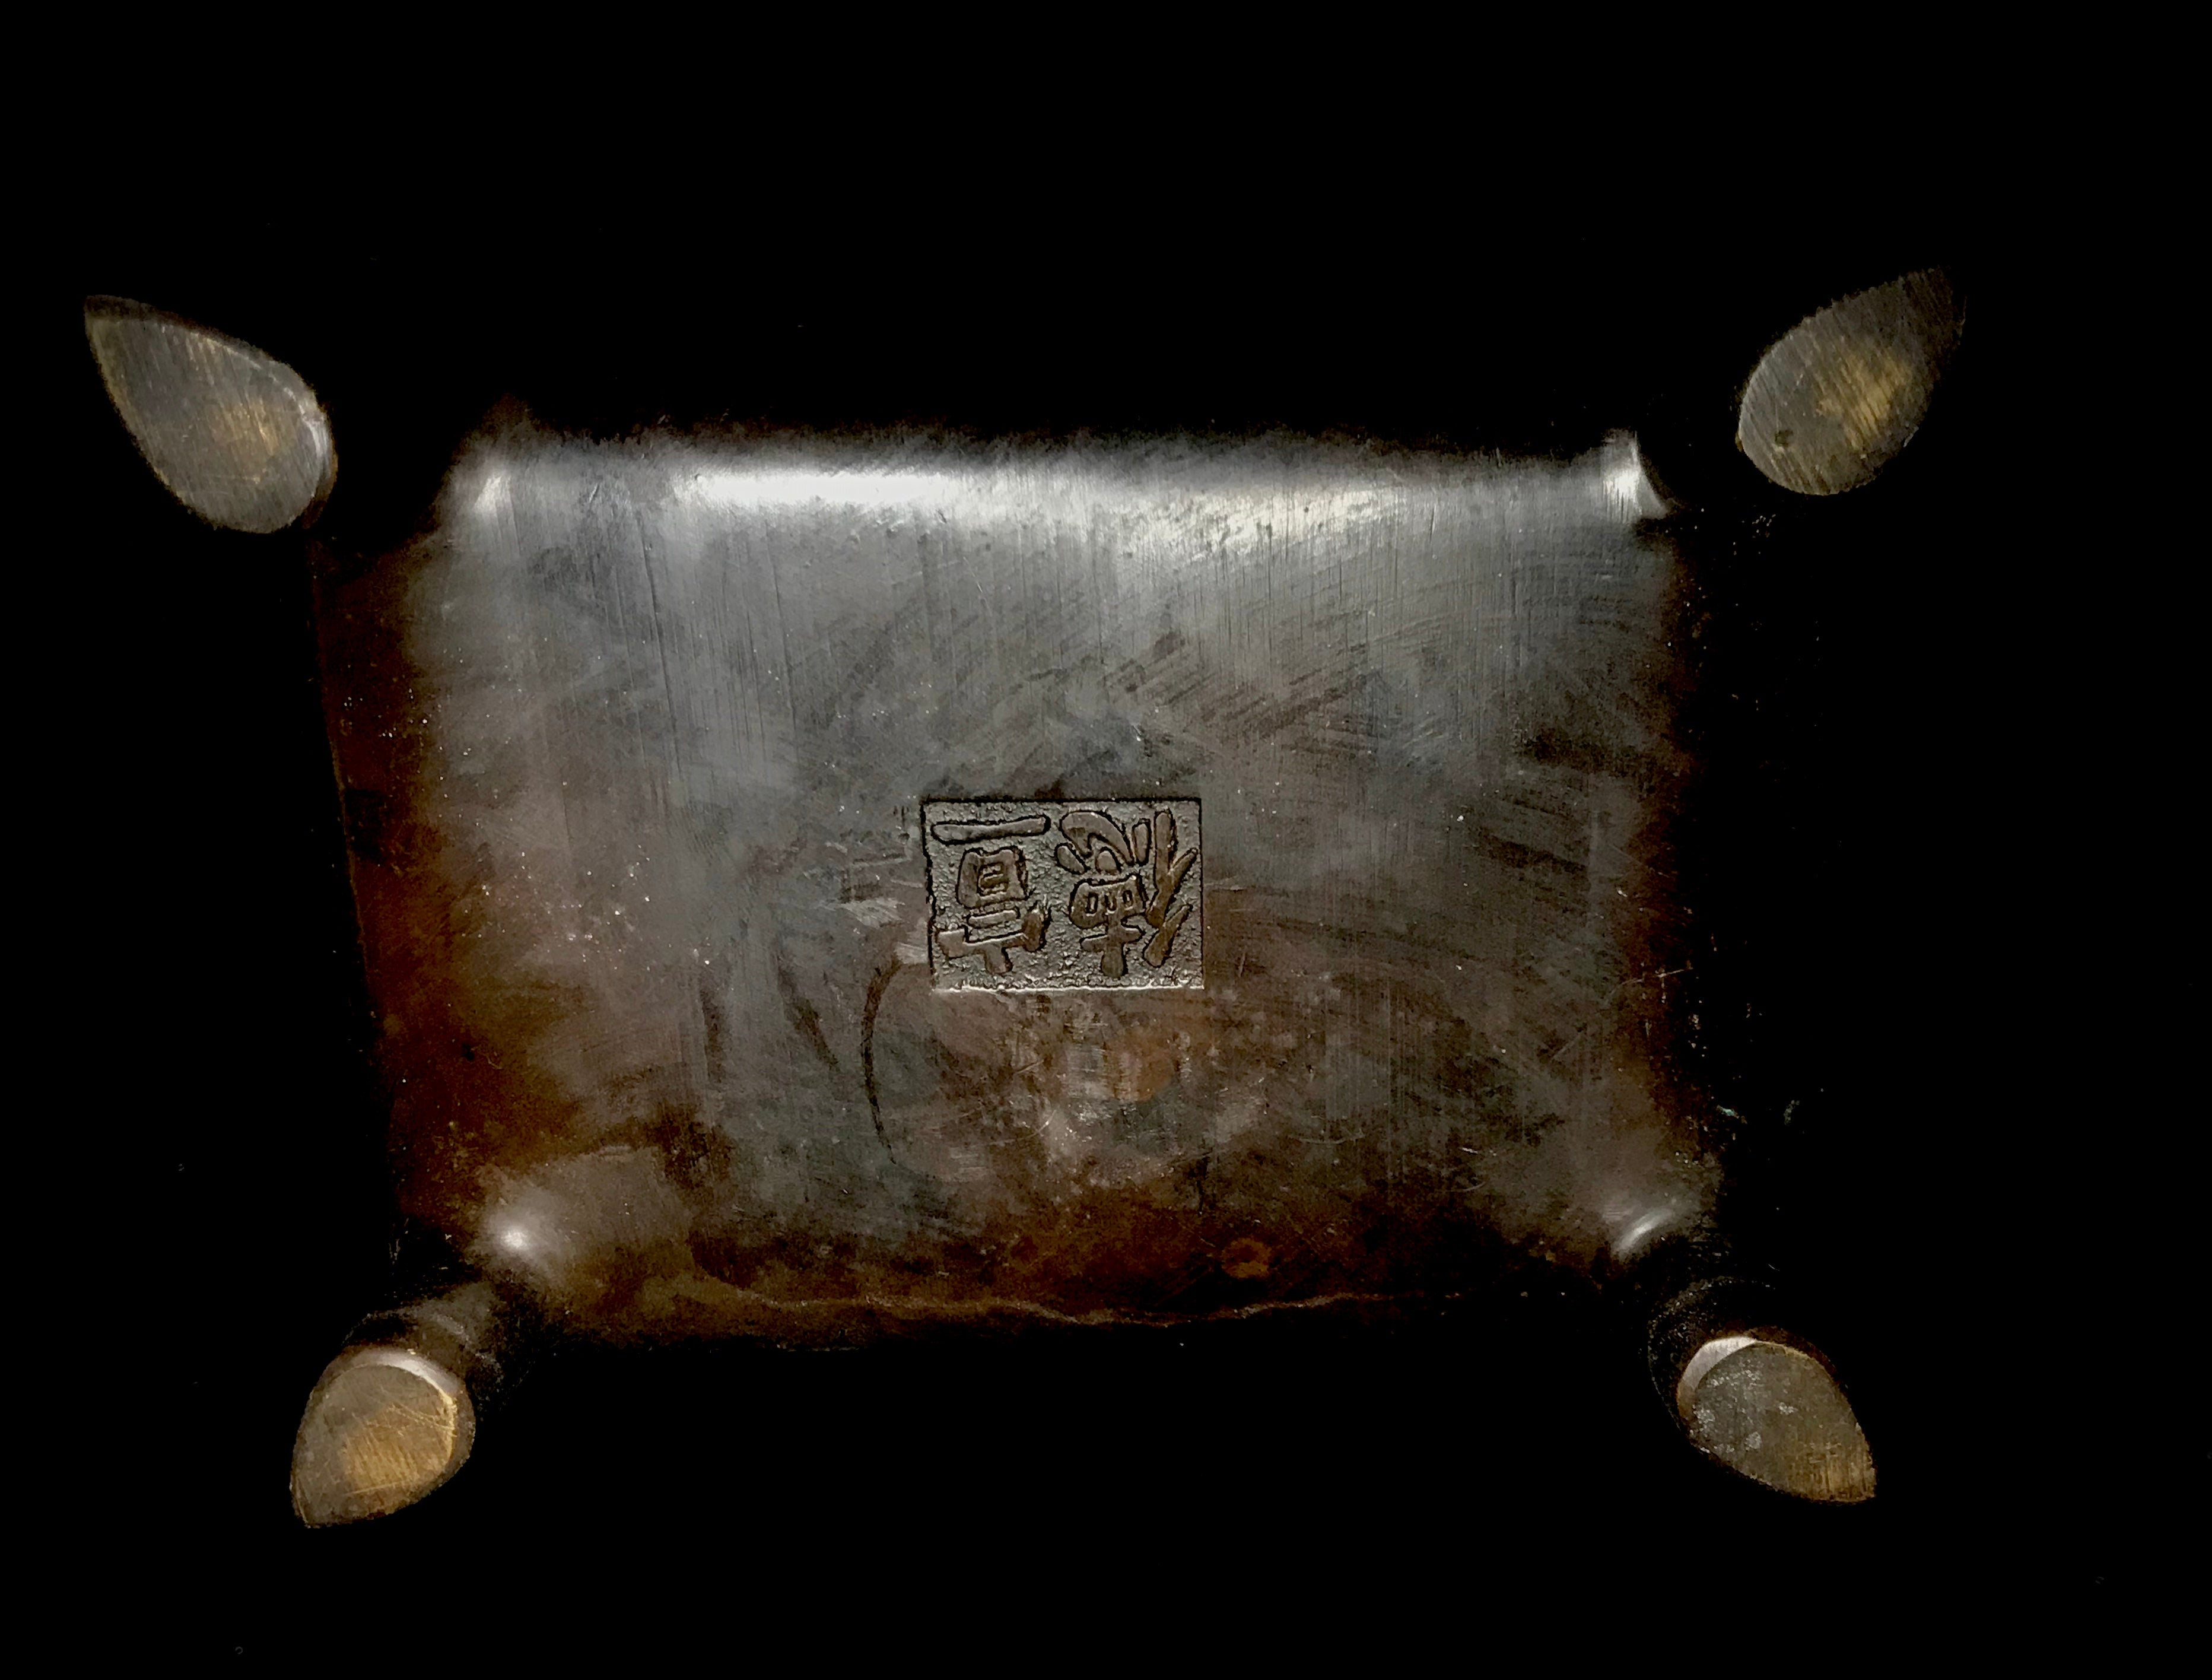 Ming Dynasty Bronze Censer with Xuande Seal - 10 Dynasties